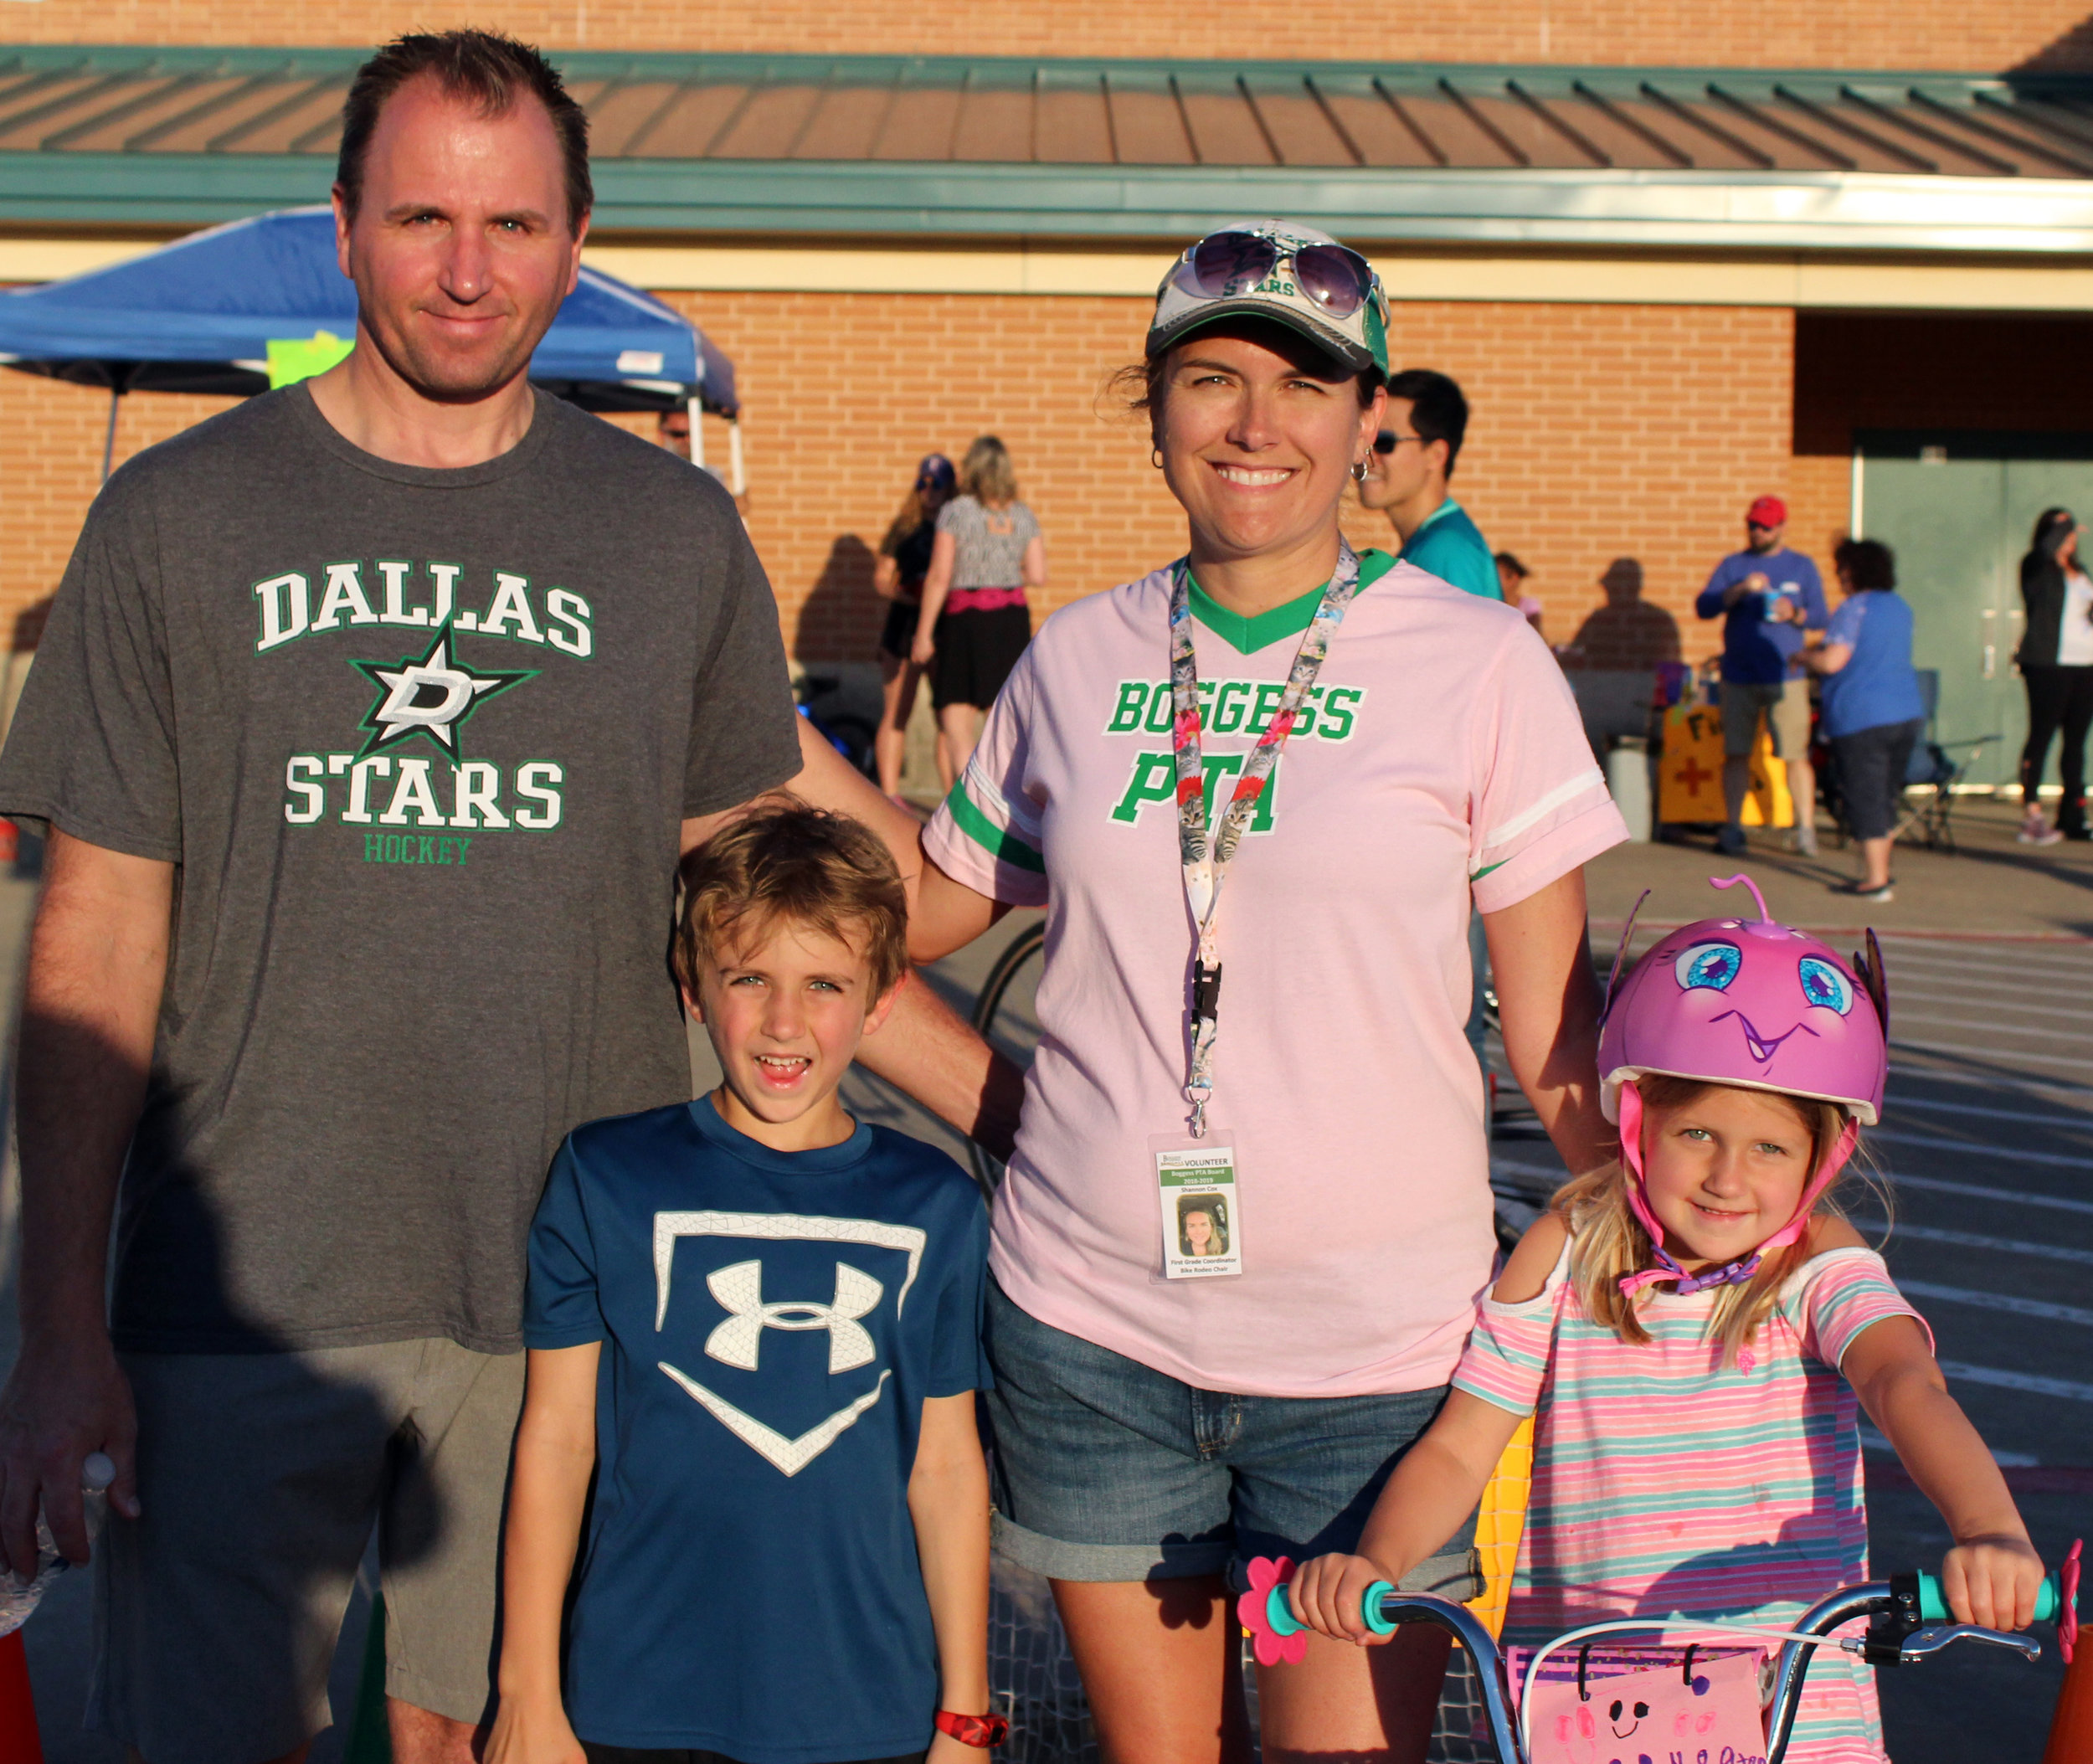 (Front row, from left) Lachlan Cox, Keaton Cox, (back row, from left) Shane Cox and Shannon Cox, Boggess Bike Rodeo chairperson.